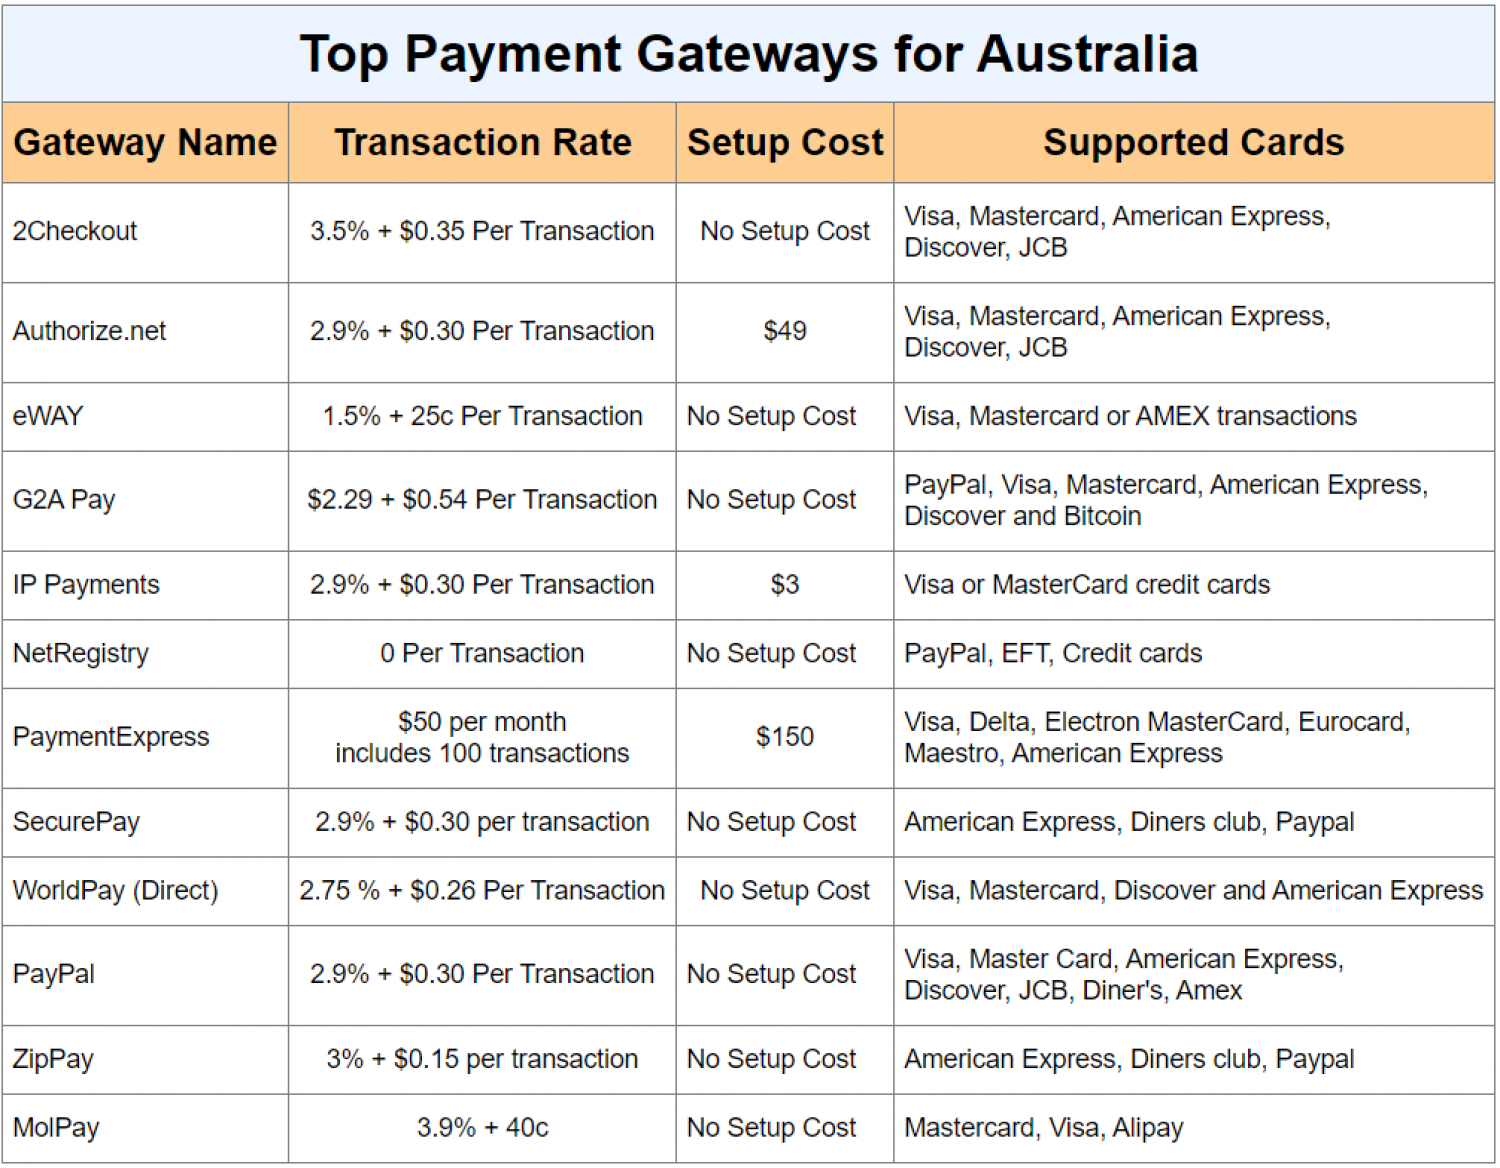 Top Payment Gateways for Australia Infographic